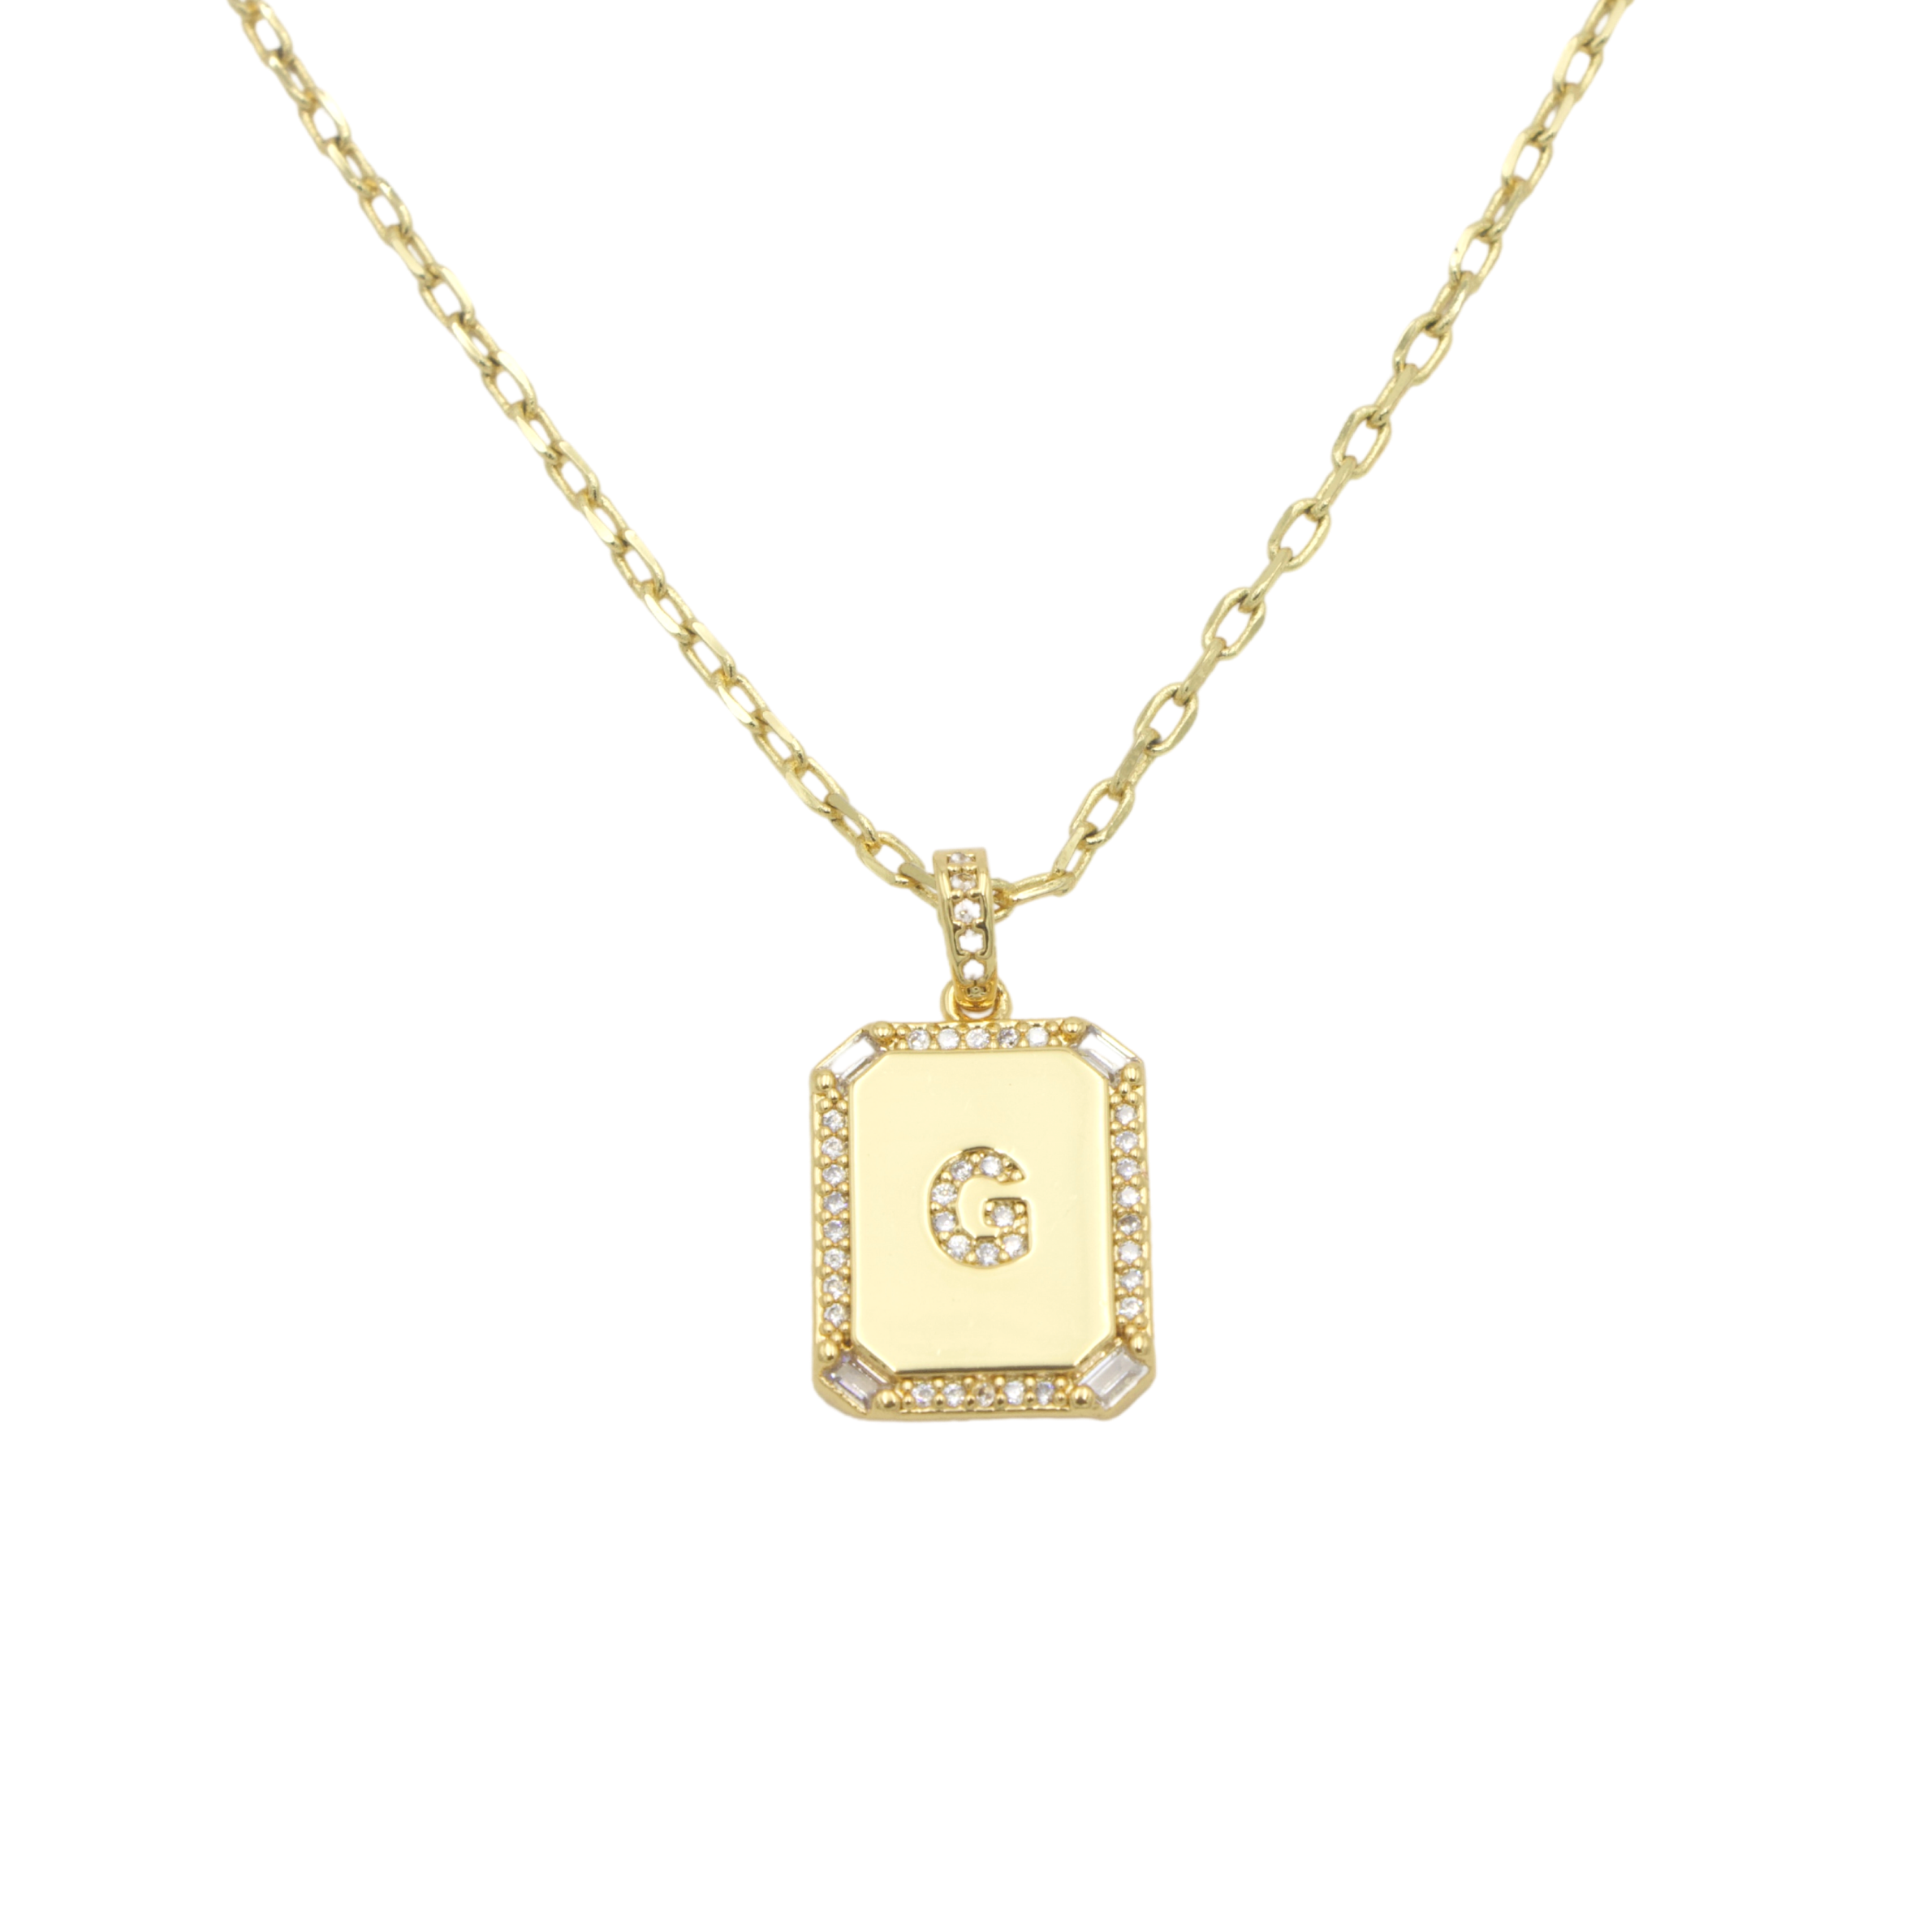 AW Boutique's gold filled 16 inch cable chain necklace finished with a dainty initial pendant with cubic zirconia detail. G initial shown.